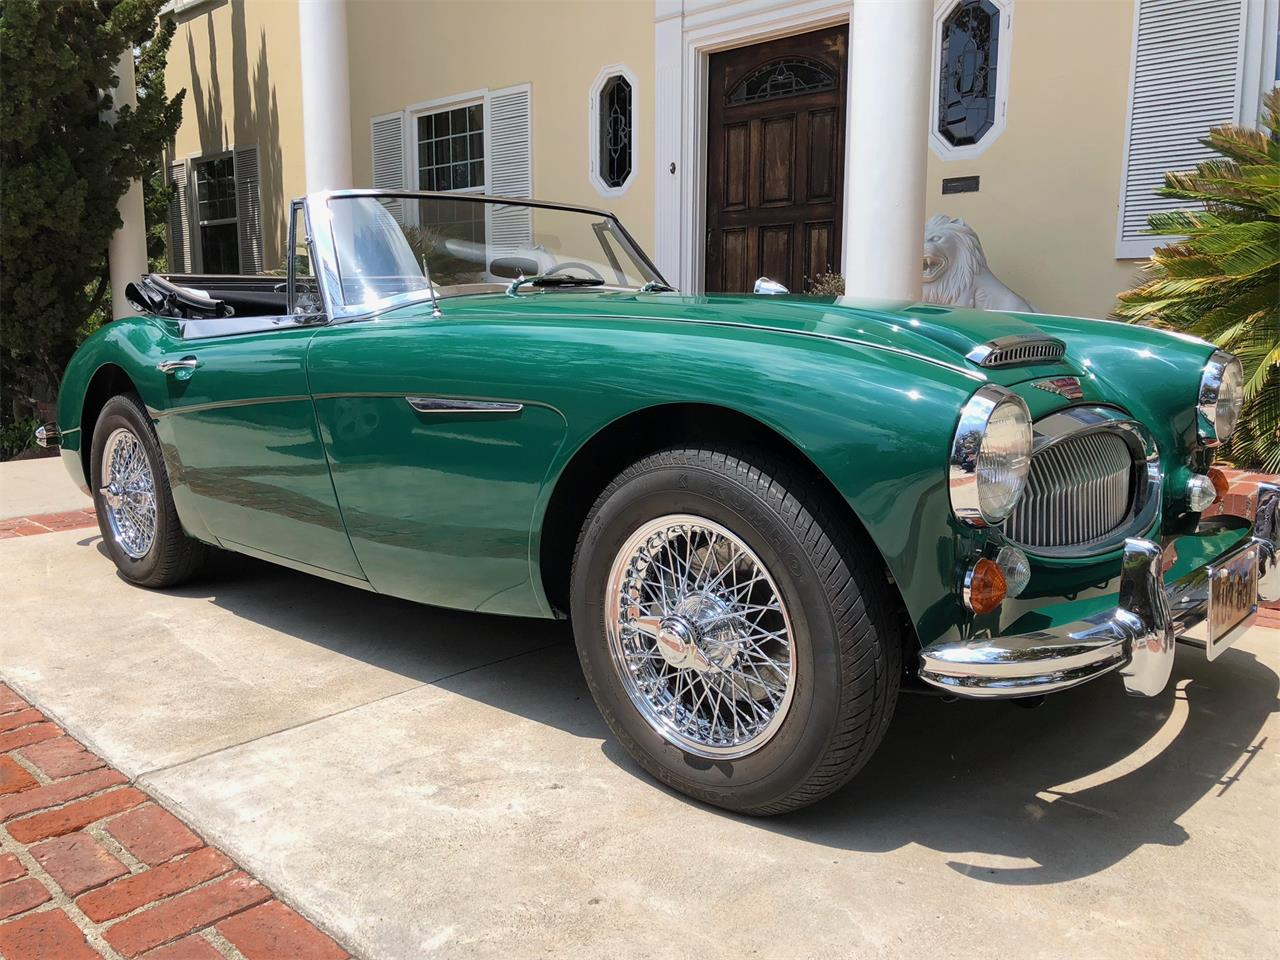 1967 Austin-Healey 3000 Mark III (CC-1101199) for sale in Los Angeles, California